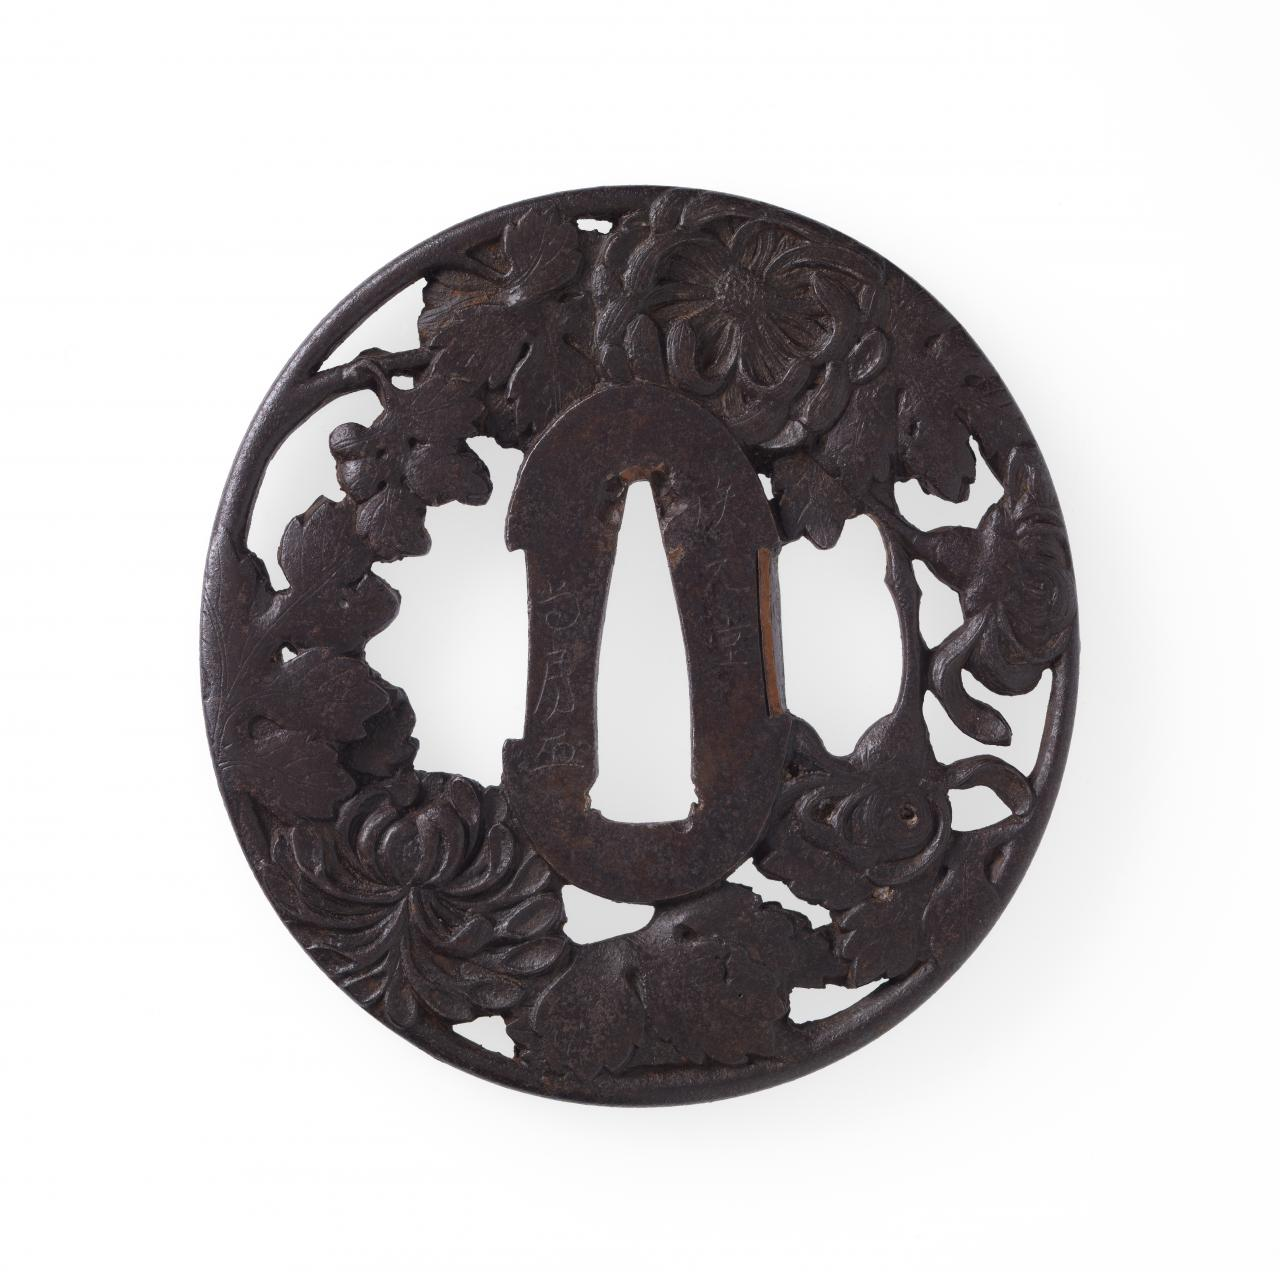 Sword guard with chrysanthemum design